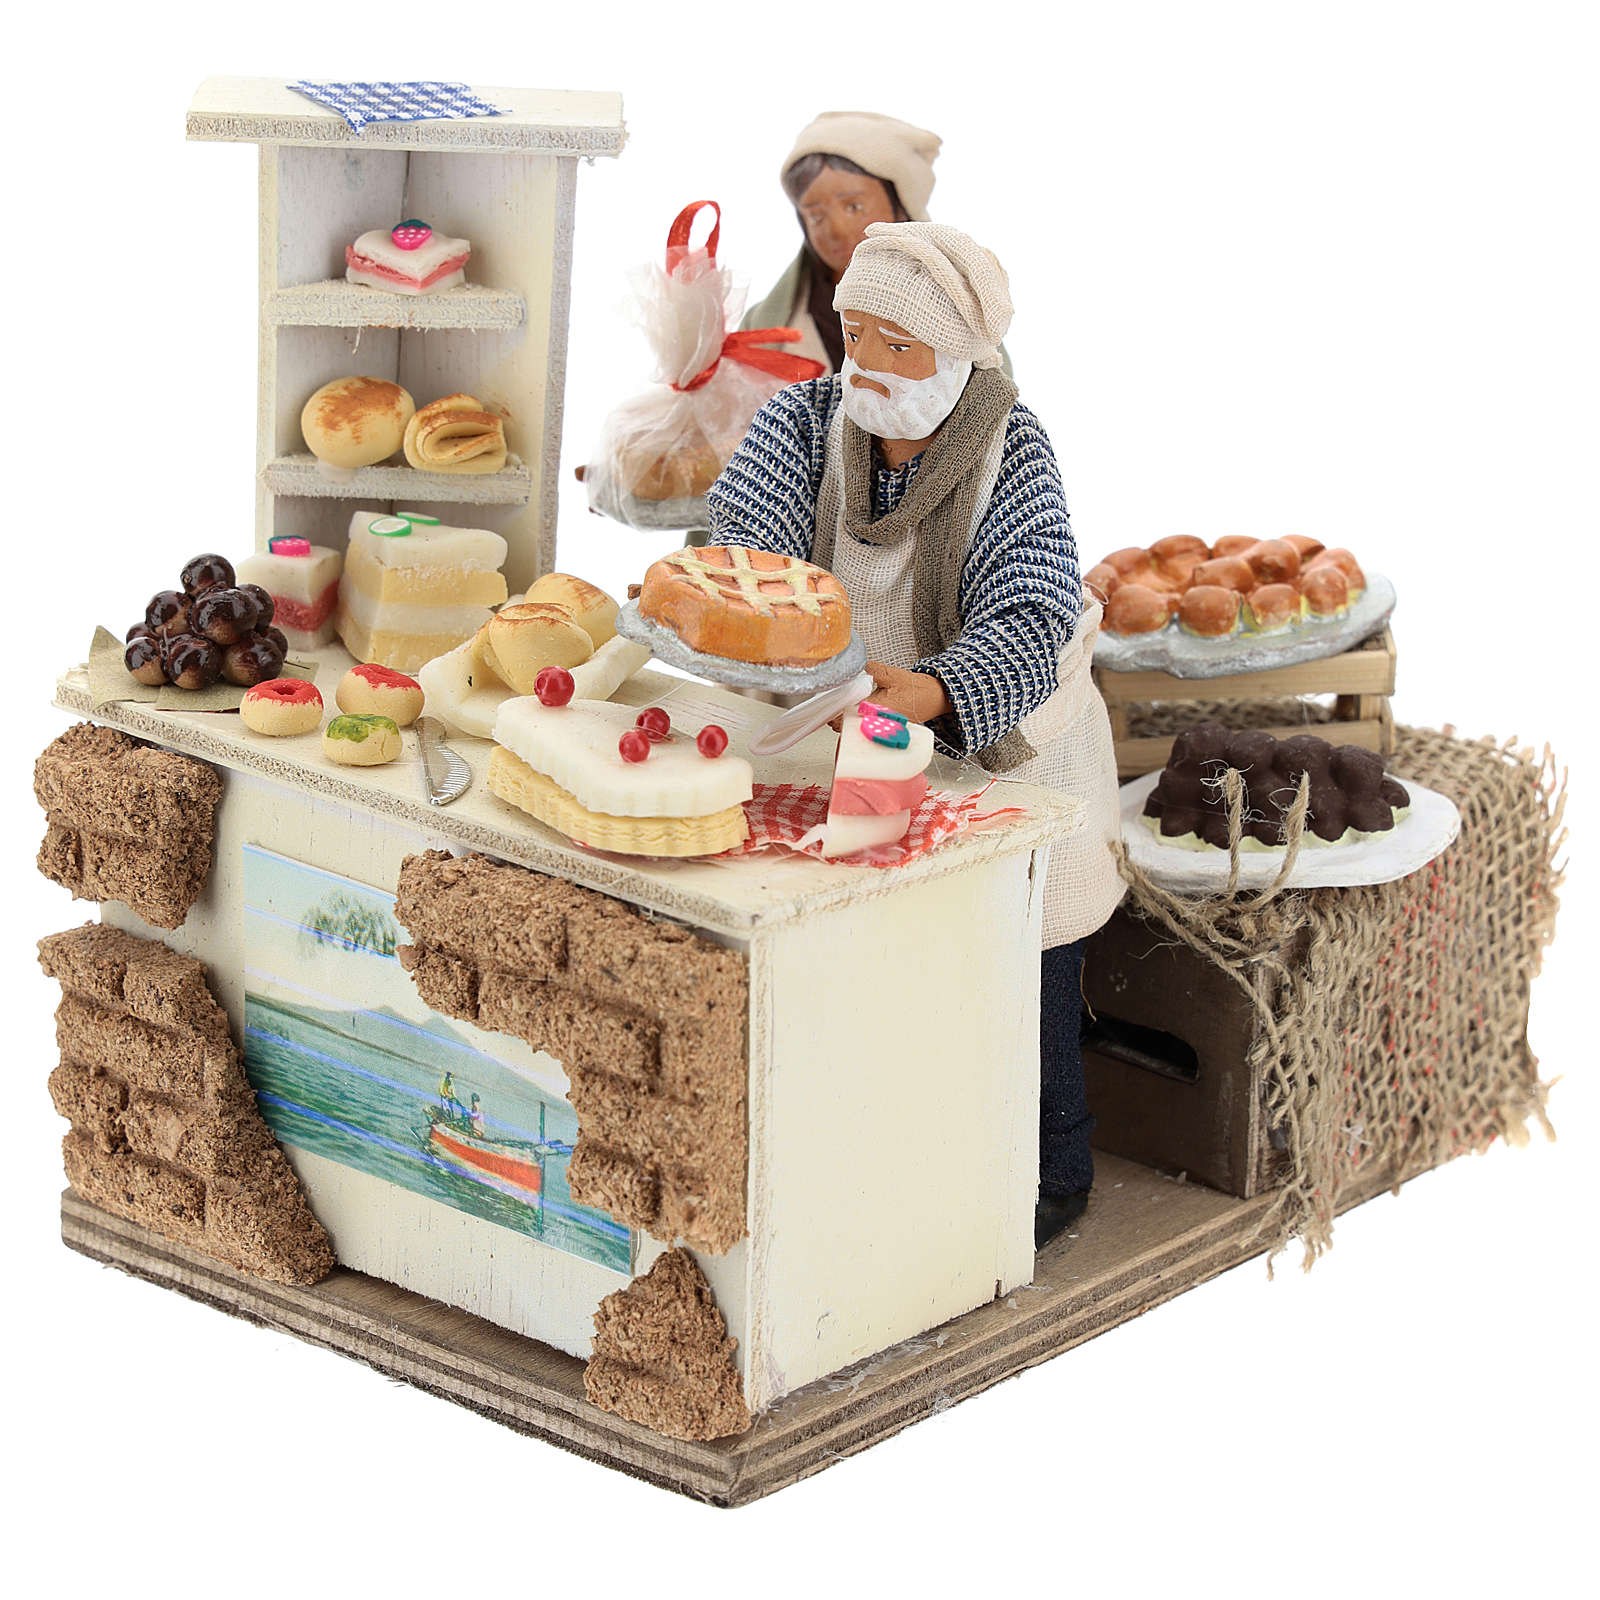 Moving confectioner with dessert counter 13 cm 4